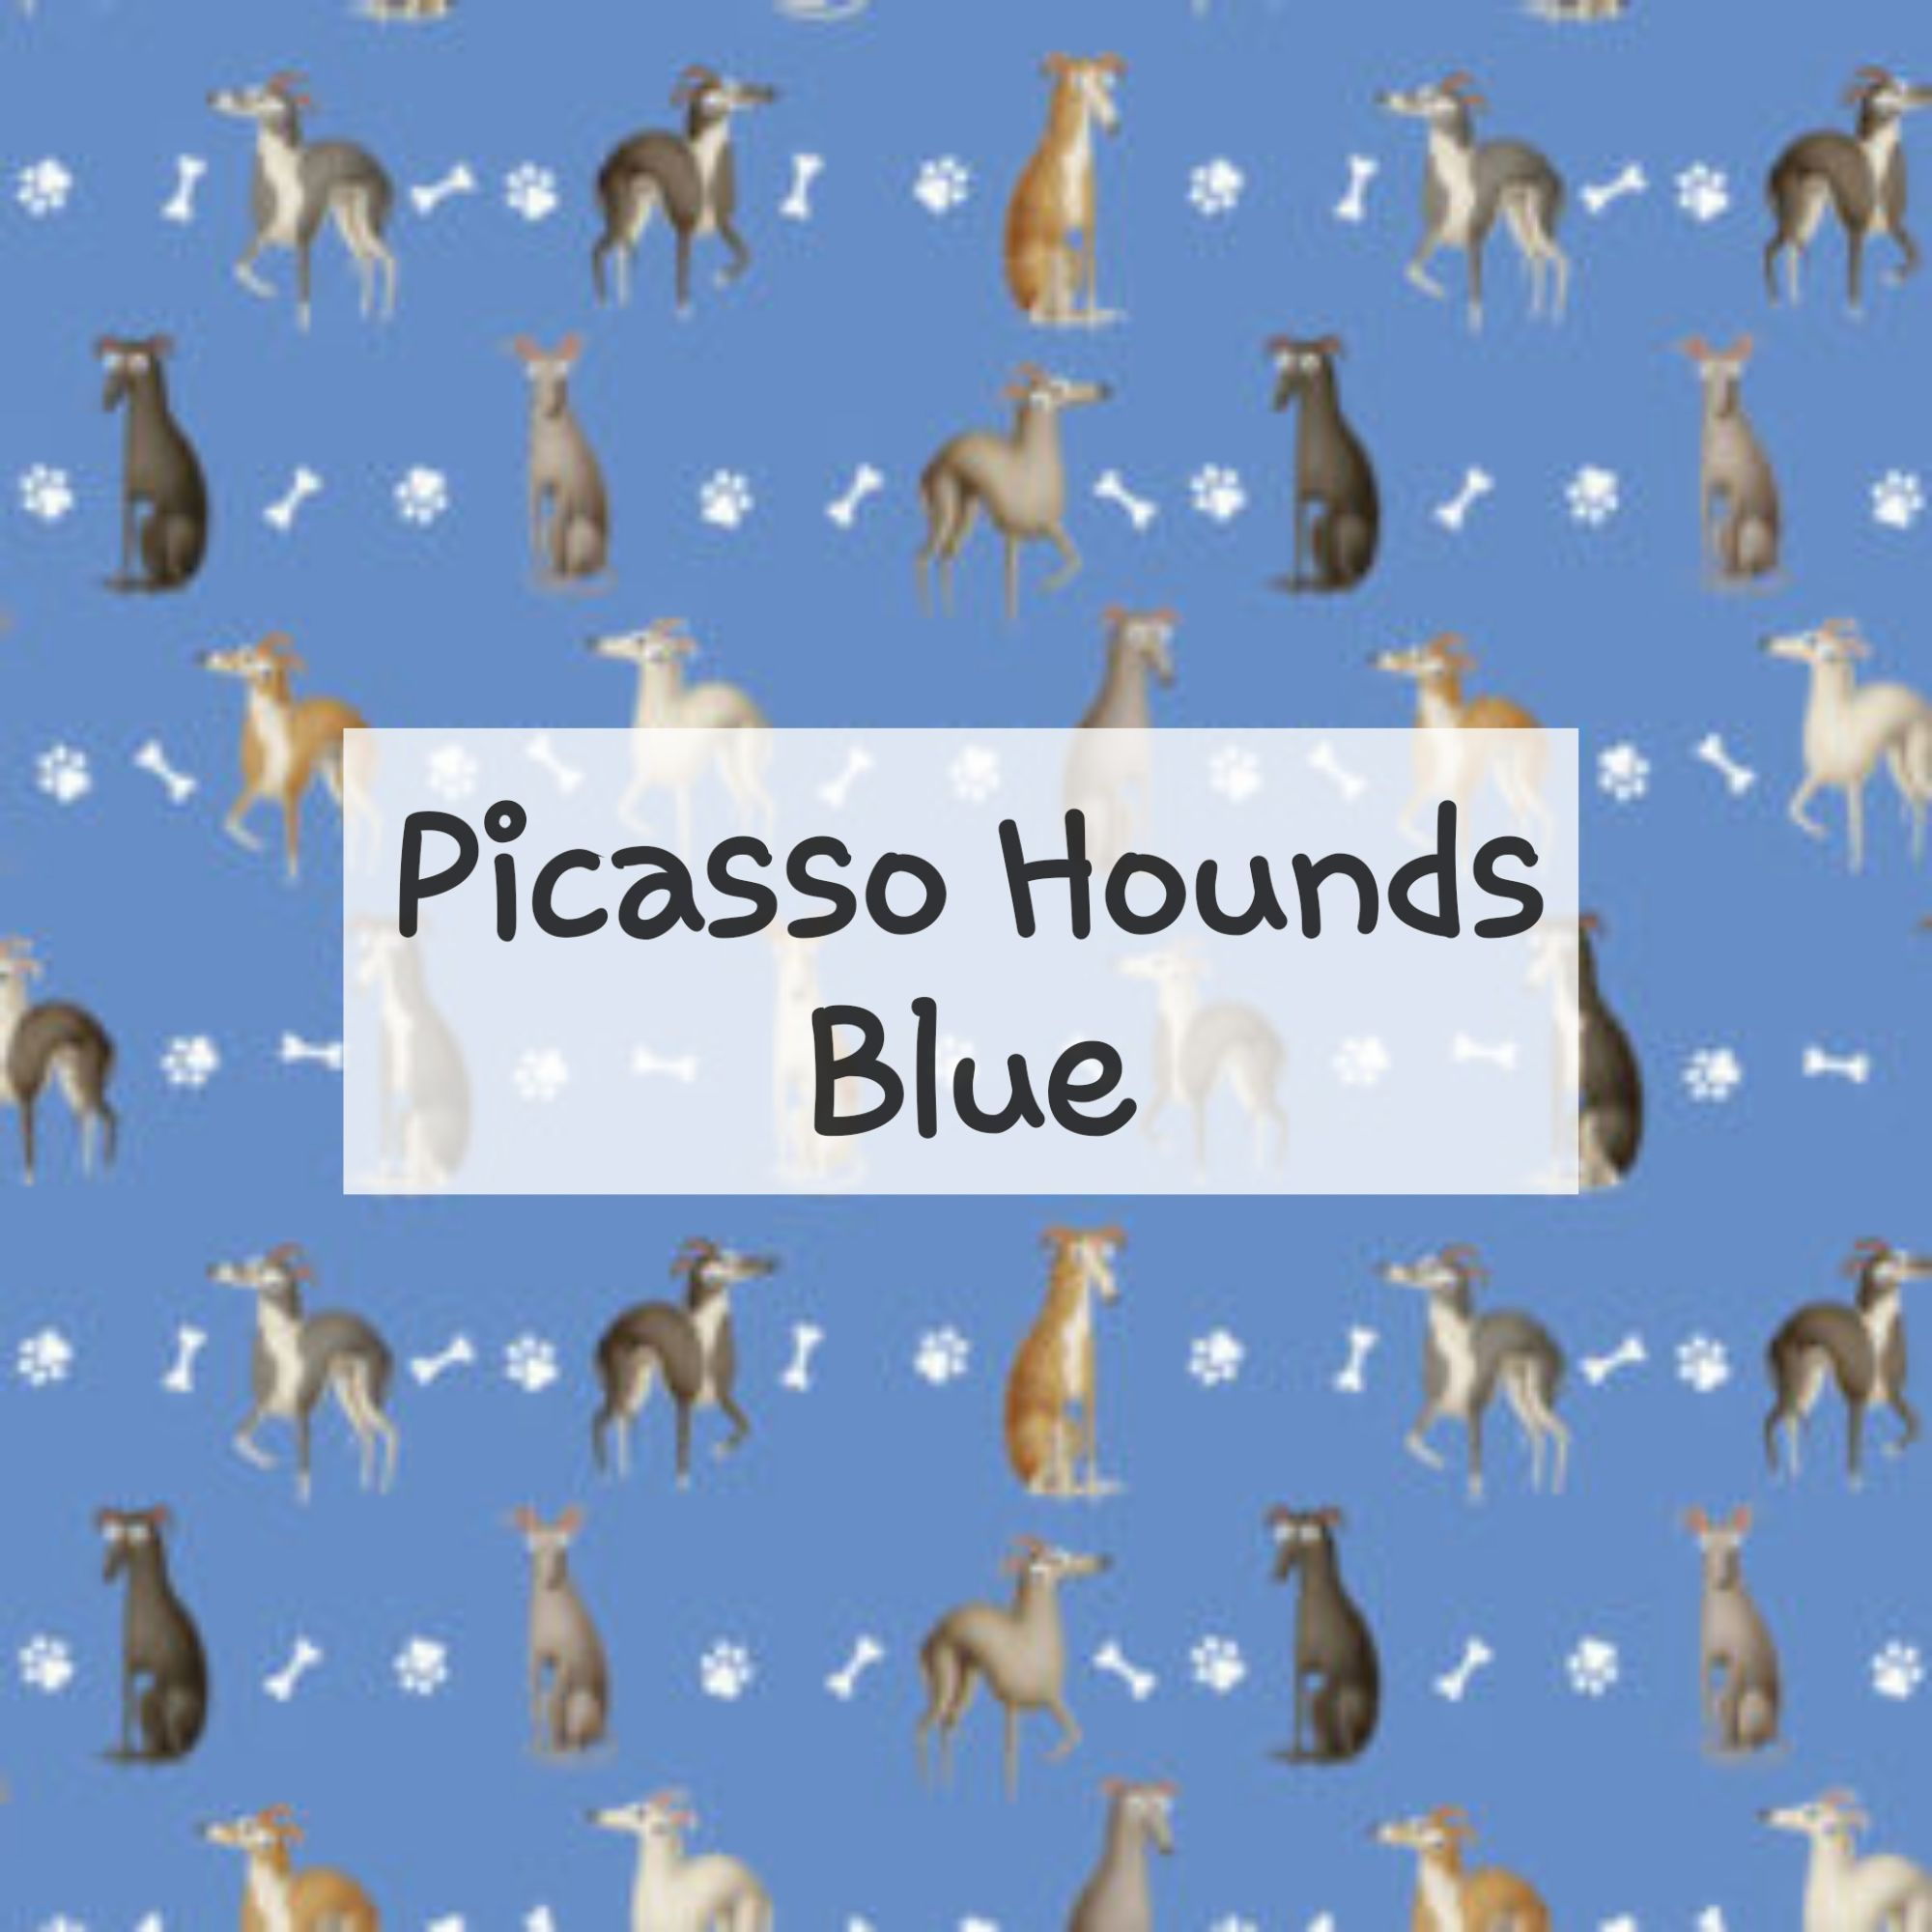 Picasso Hounds Blue